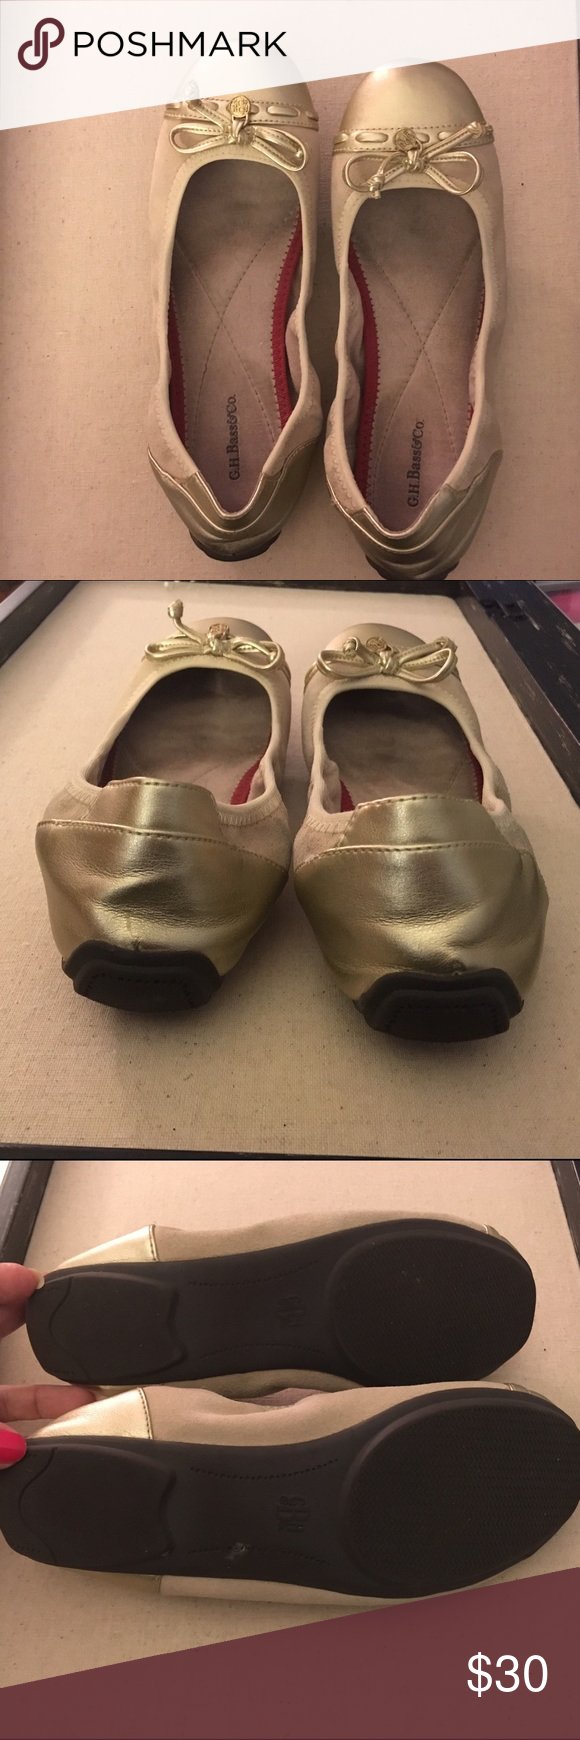 SALE! G.H. Bass&Co Gold Ballet Flats Used but in good condition. Hardly any wear on the soles. These are the most comfortable ballet flats I've ever worn. The padding is amazing! Suede and Leather. Rubber sole Bass Shoes Flats & Loafers